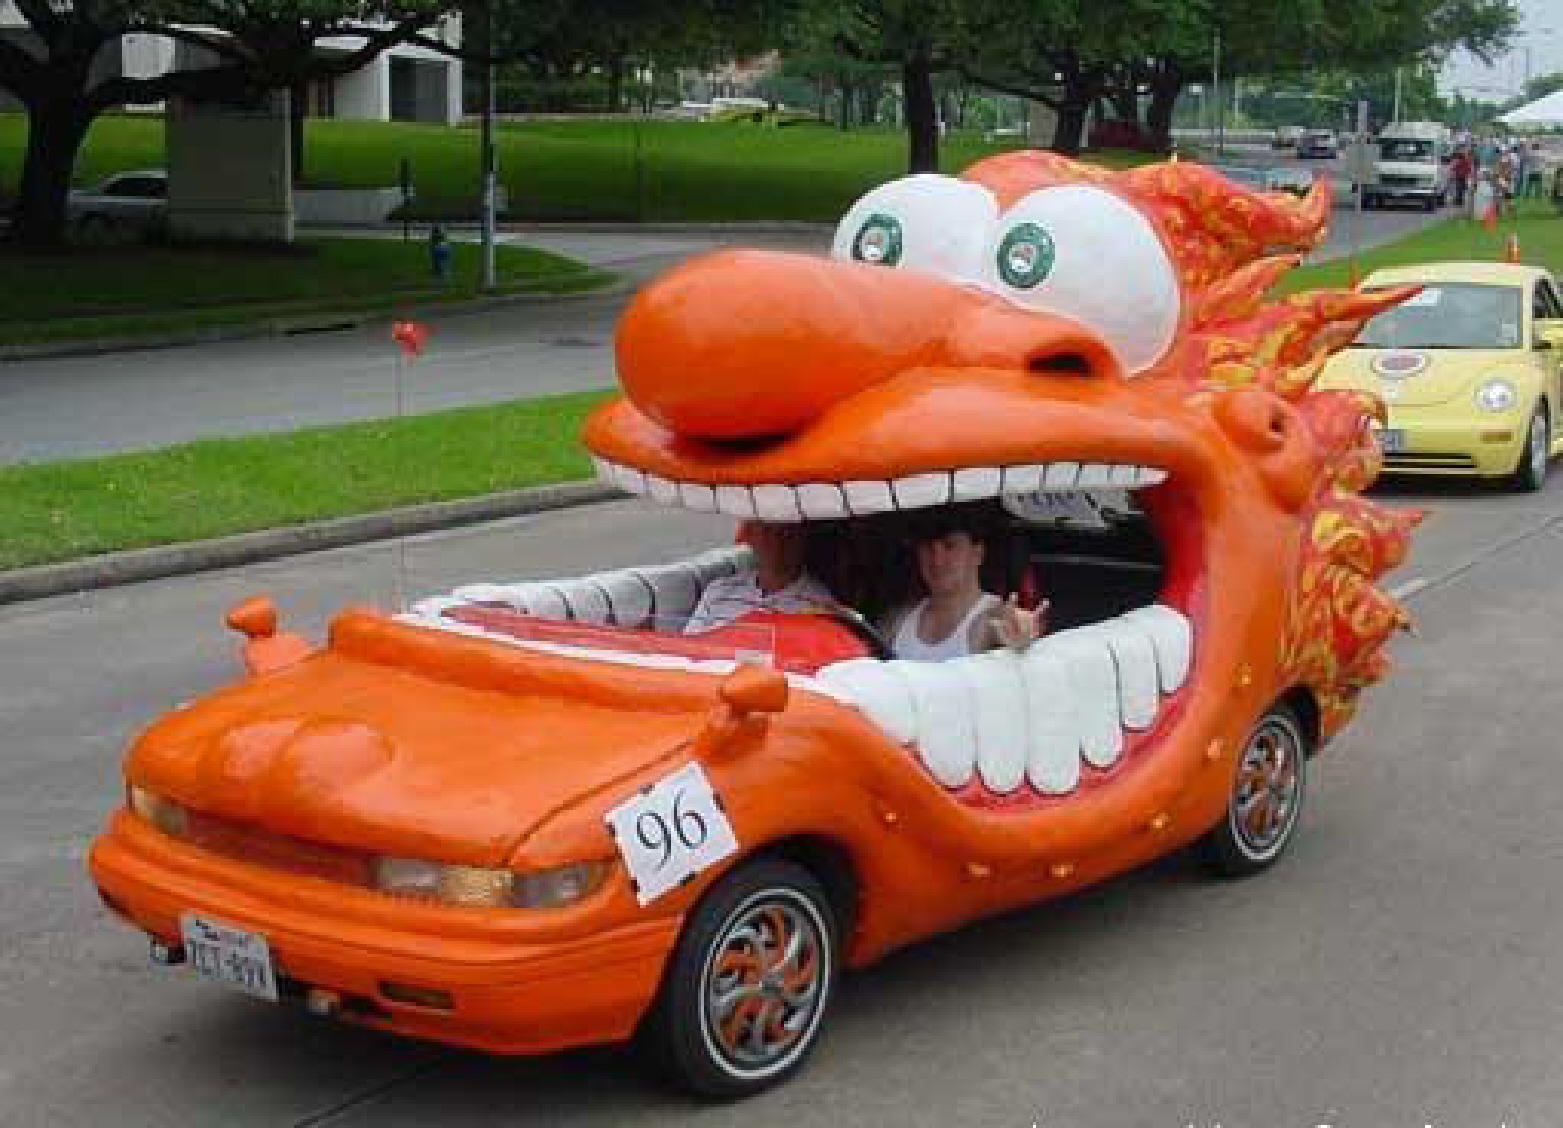 crazy orange pearlsofprofundity proclivity cars funny weird fast ride cool fun looking vehicle ever funniest designs strange silly automobile imagine